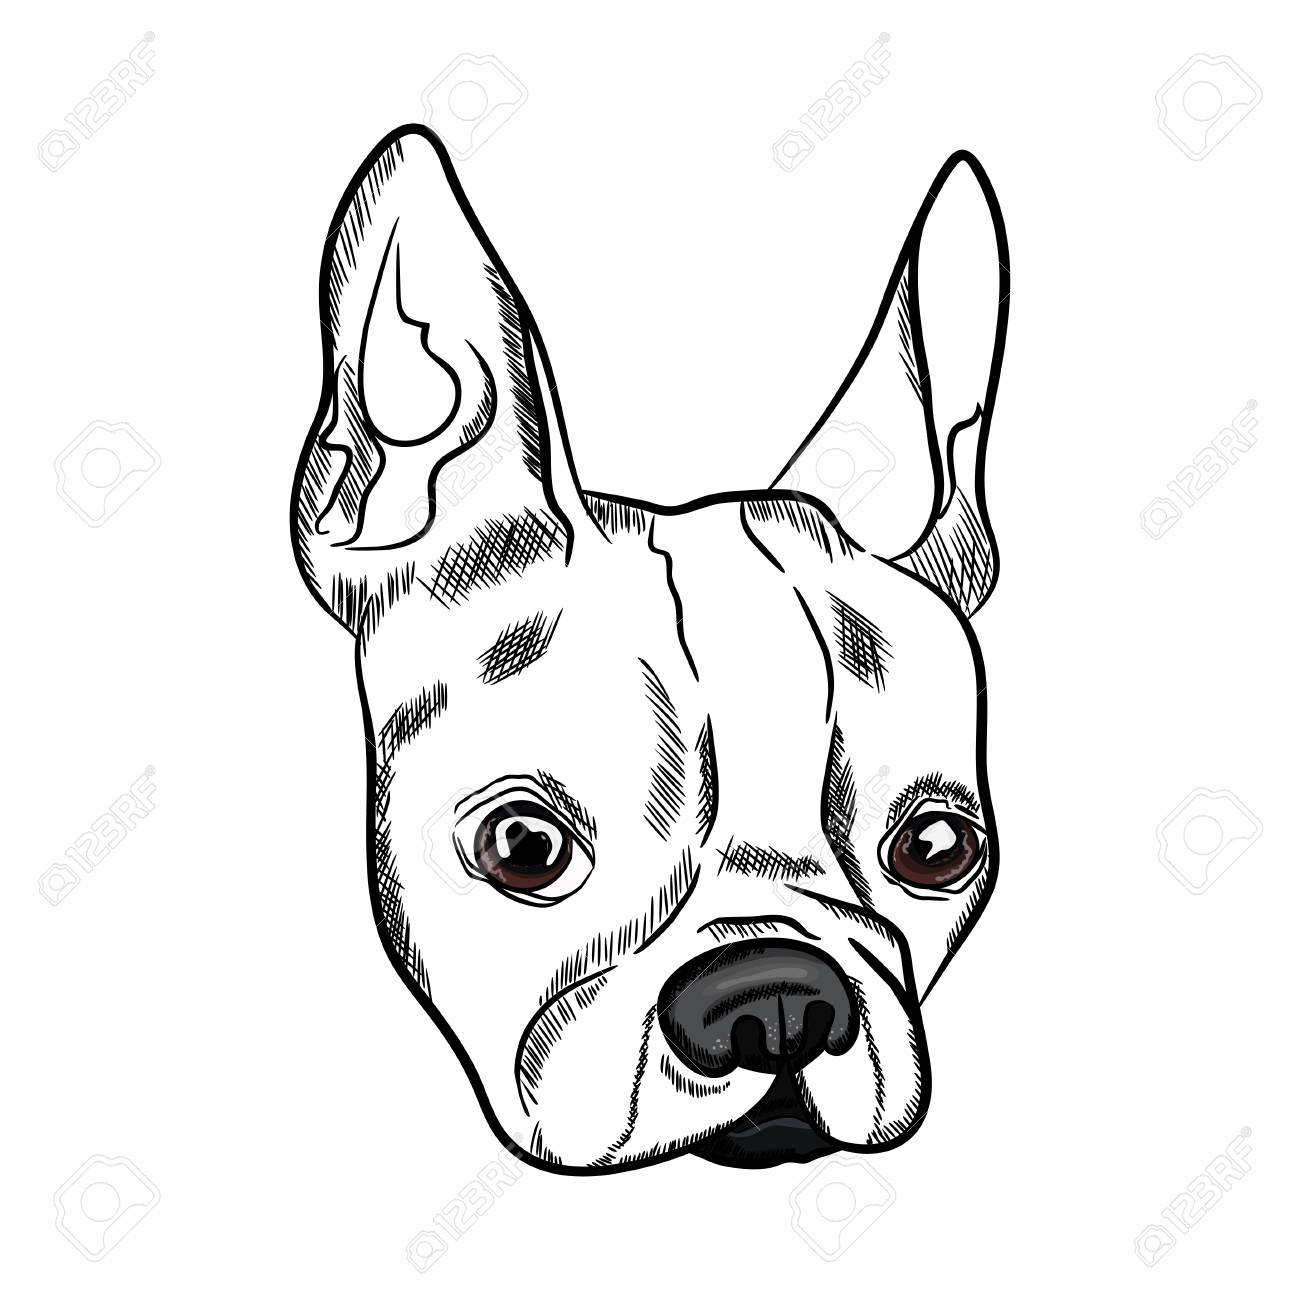 1300x1300 Outline Sketch Of French Bulldog Head On White Background. Vector